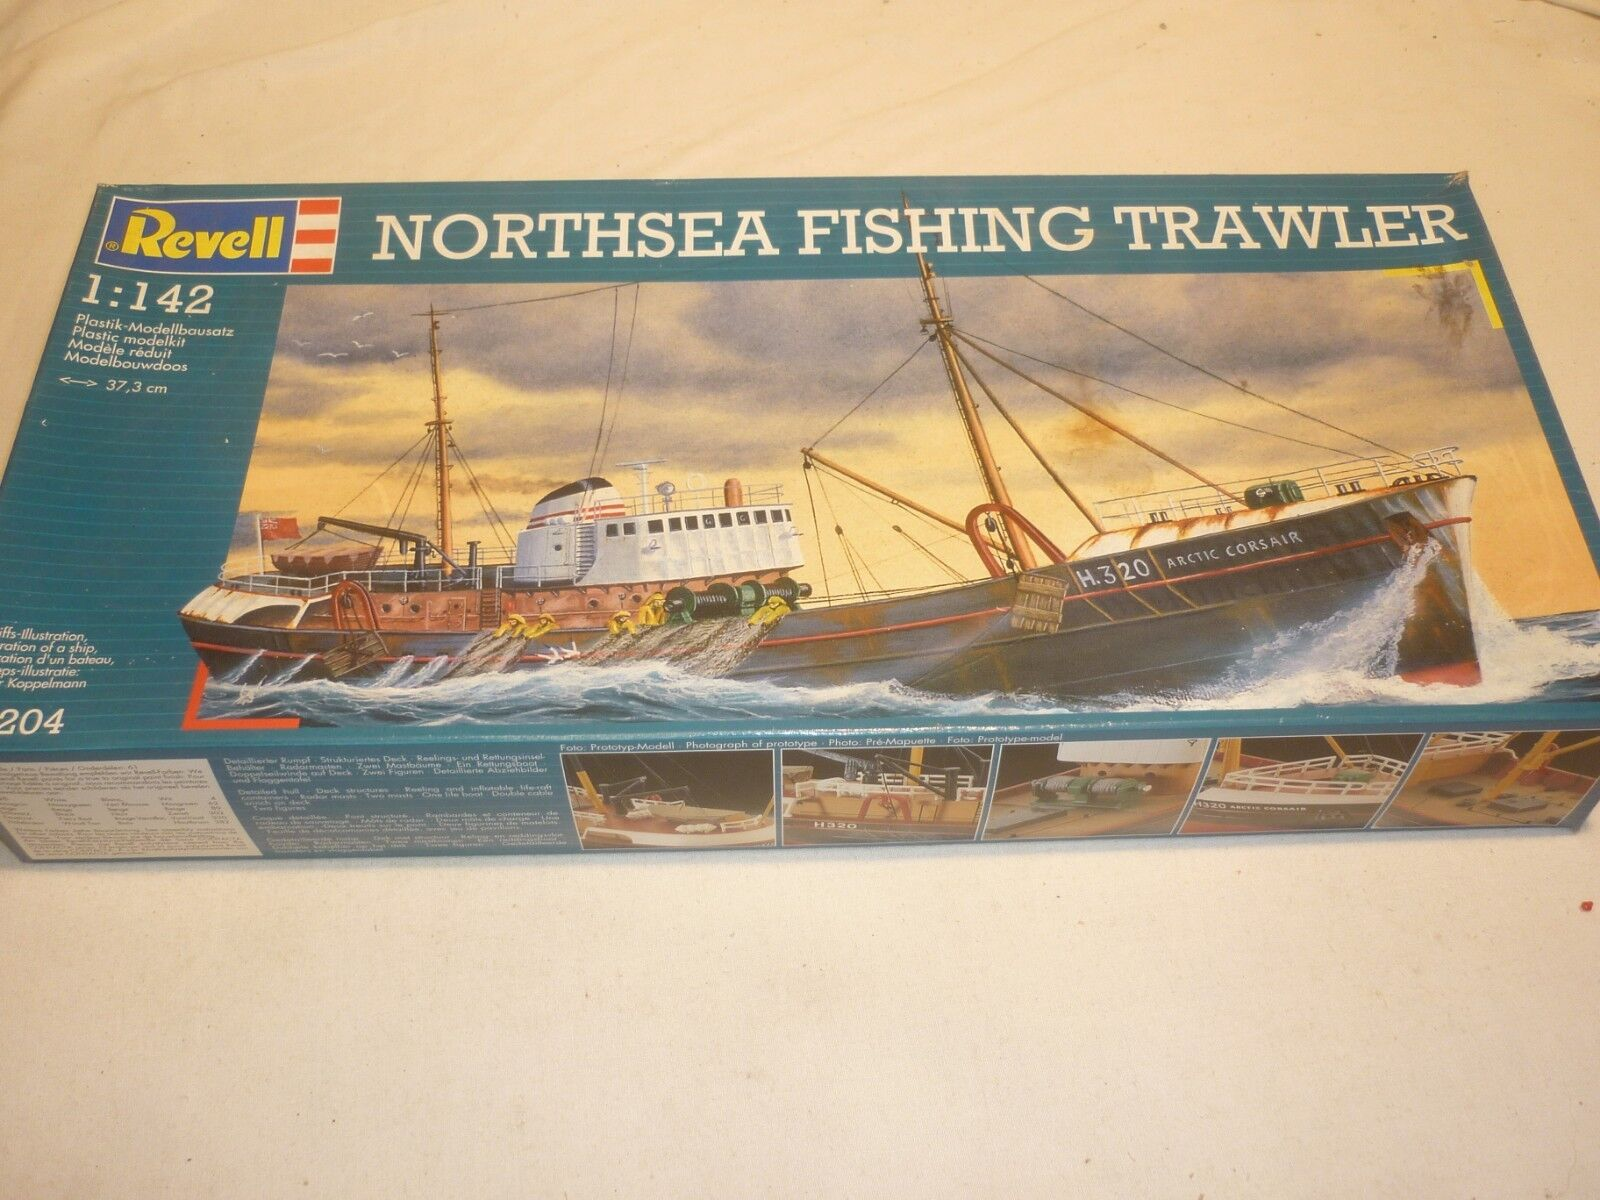 A Revell started plastic kit of a NORTHSEA Fishing trawler, Boxed